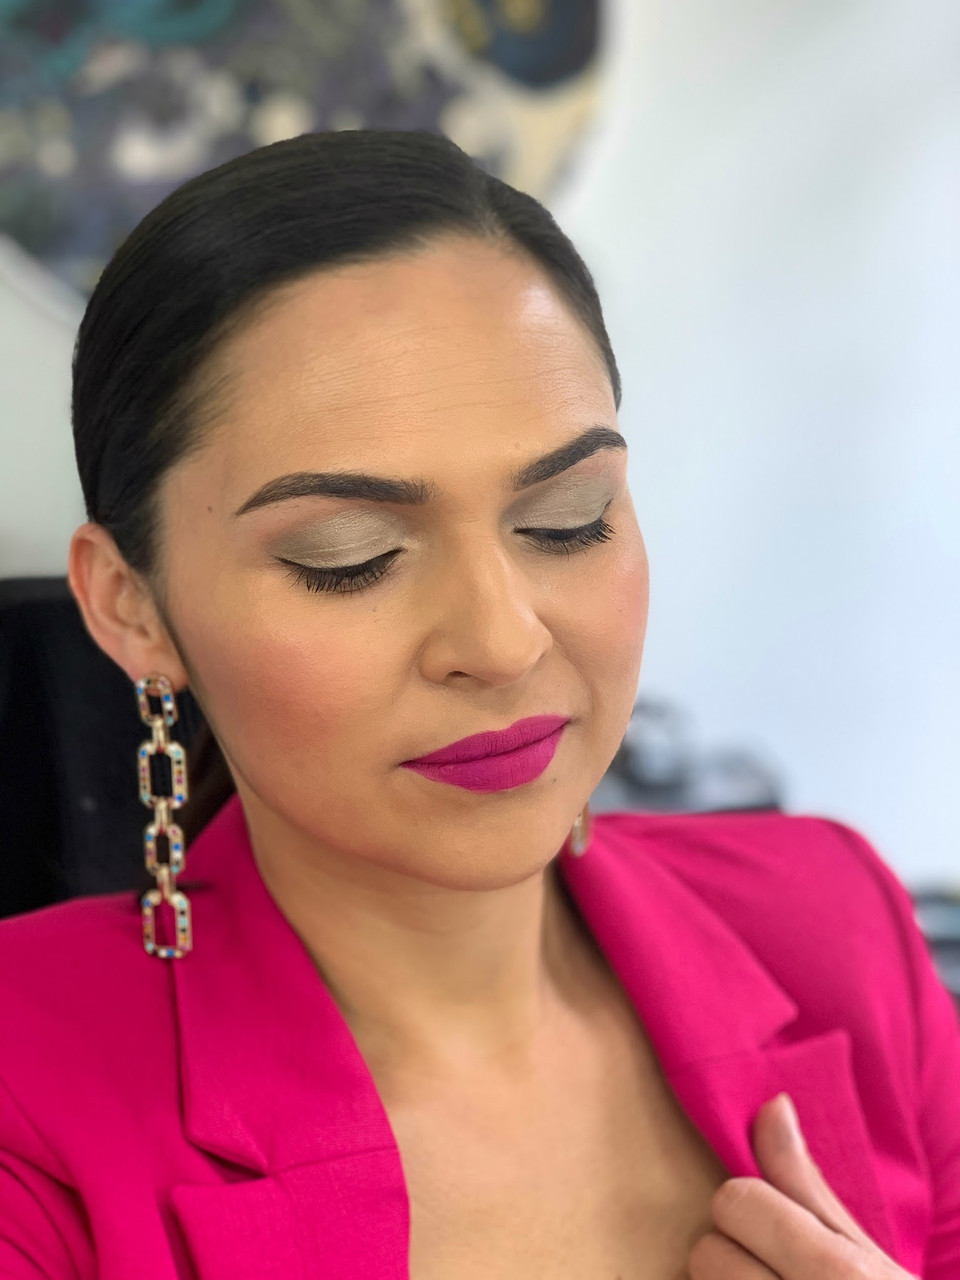 FRIDAY GLAM SESSION: Pink POP